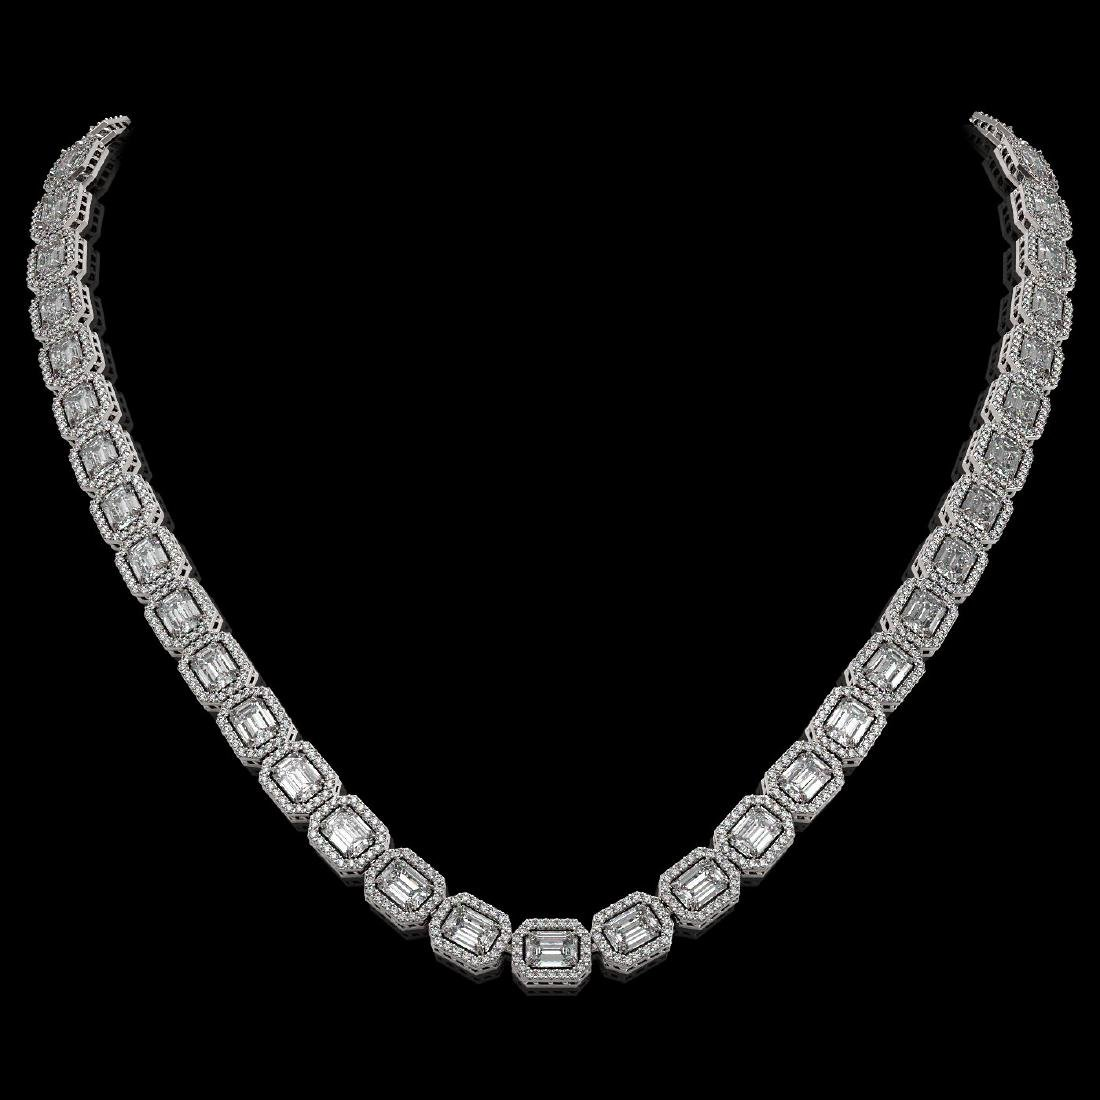 33.10 CTW Emerald Cut Diamond Designer Necklace 18K